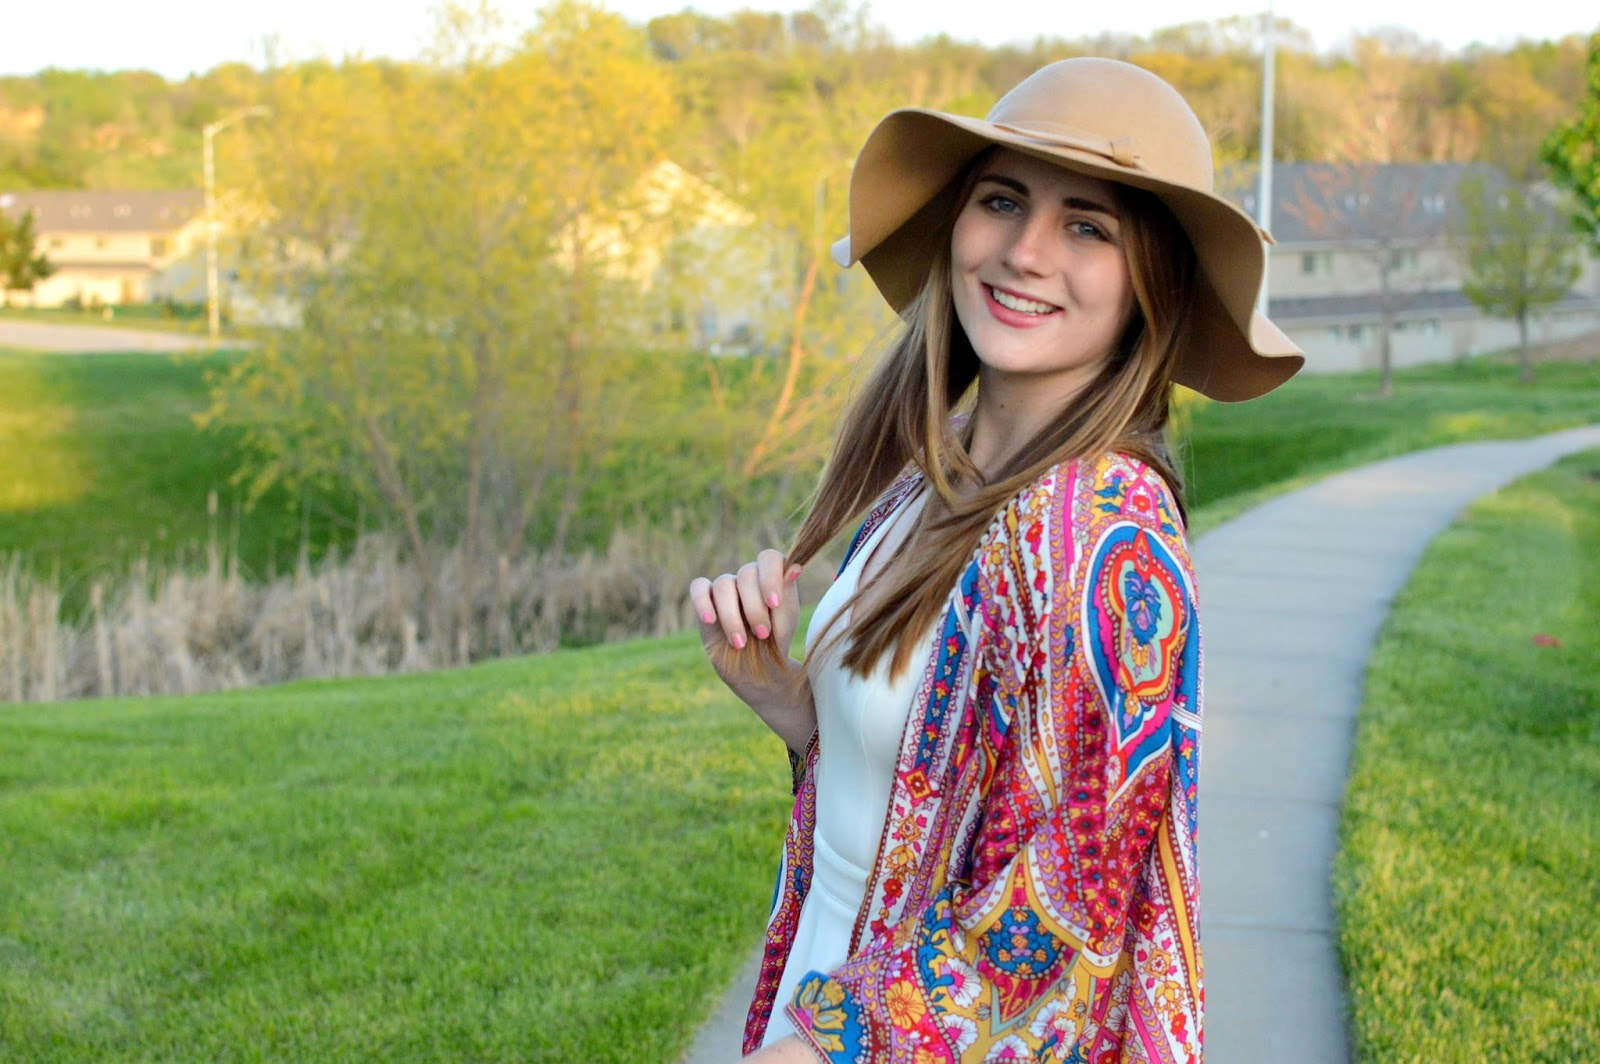 bright kimono with a floppy hat